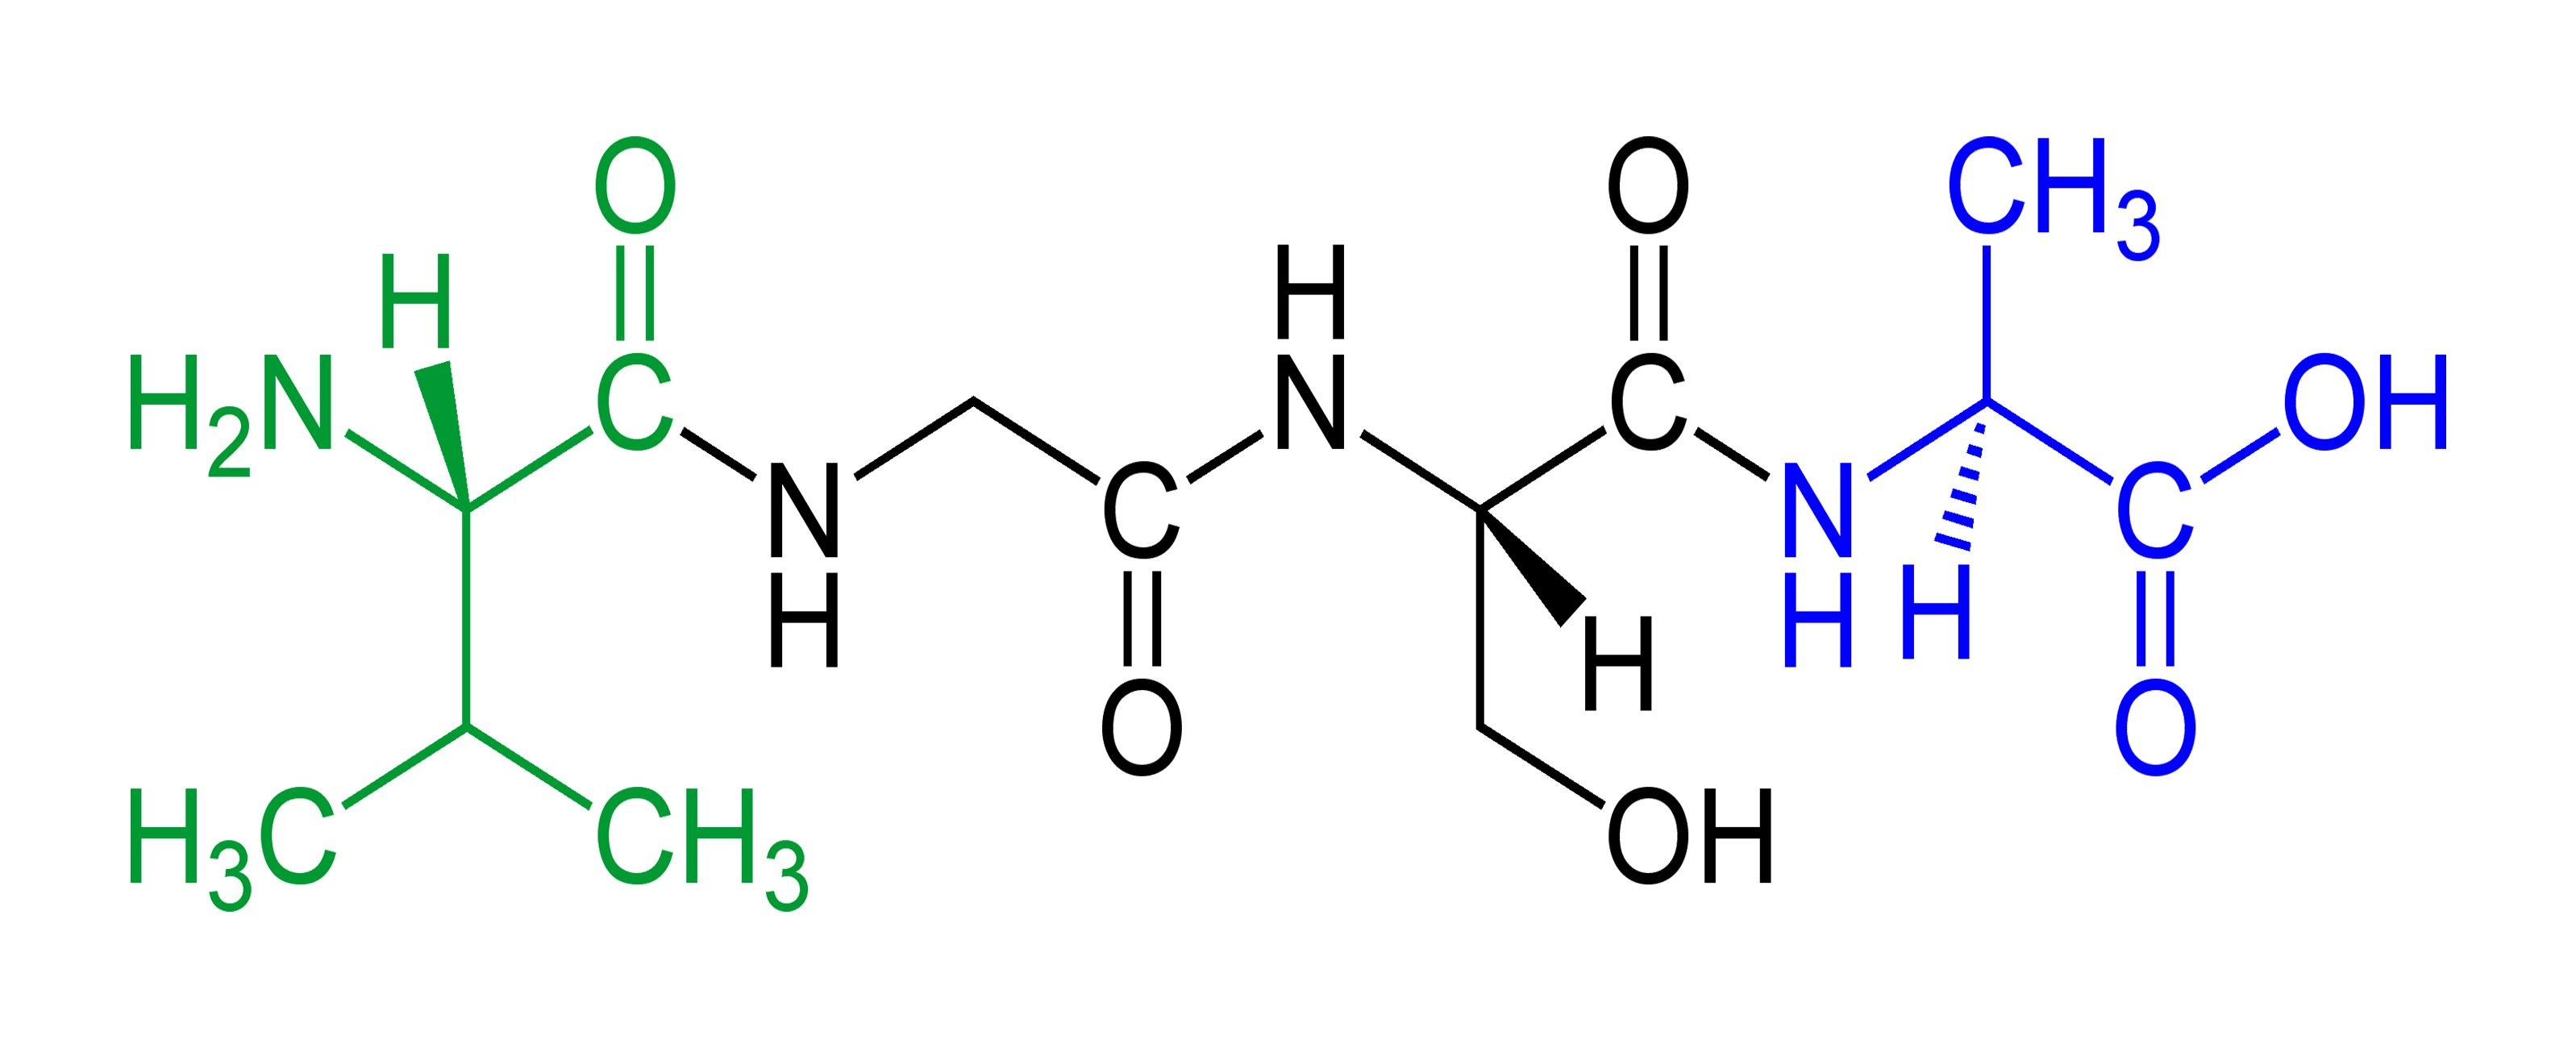 This is an example of a tetrapeptide, with the N-terminus in green and the C-terminus in blue.